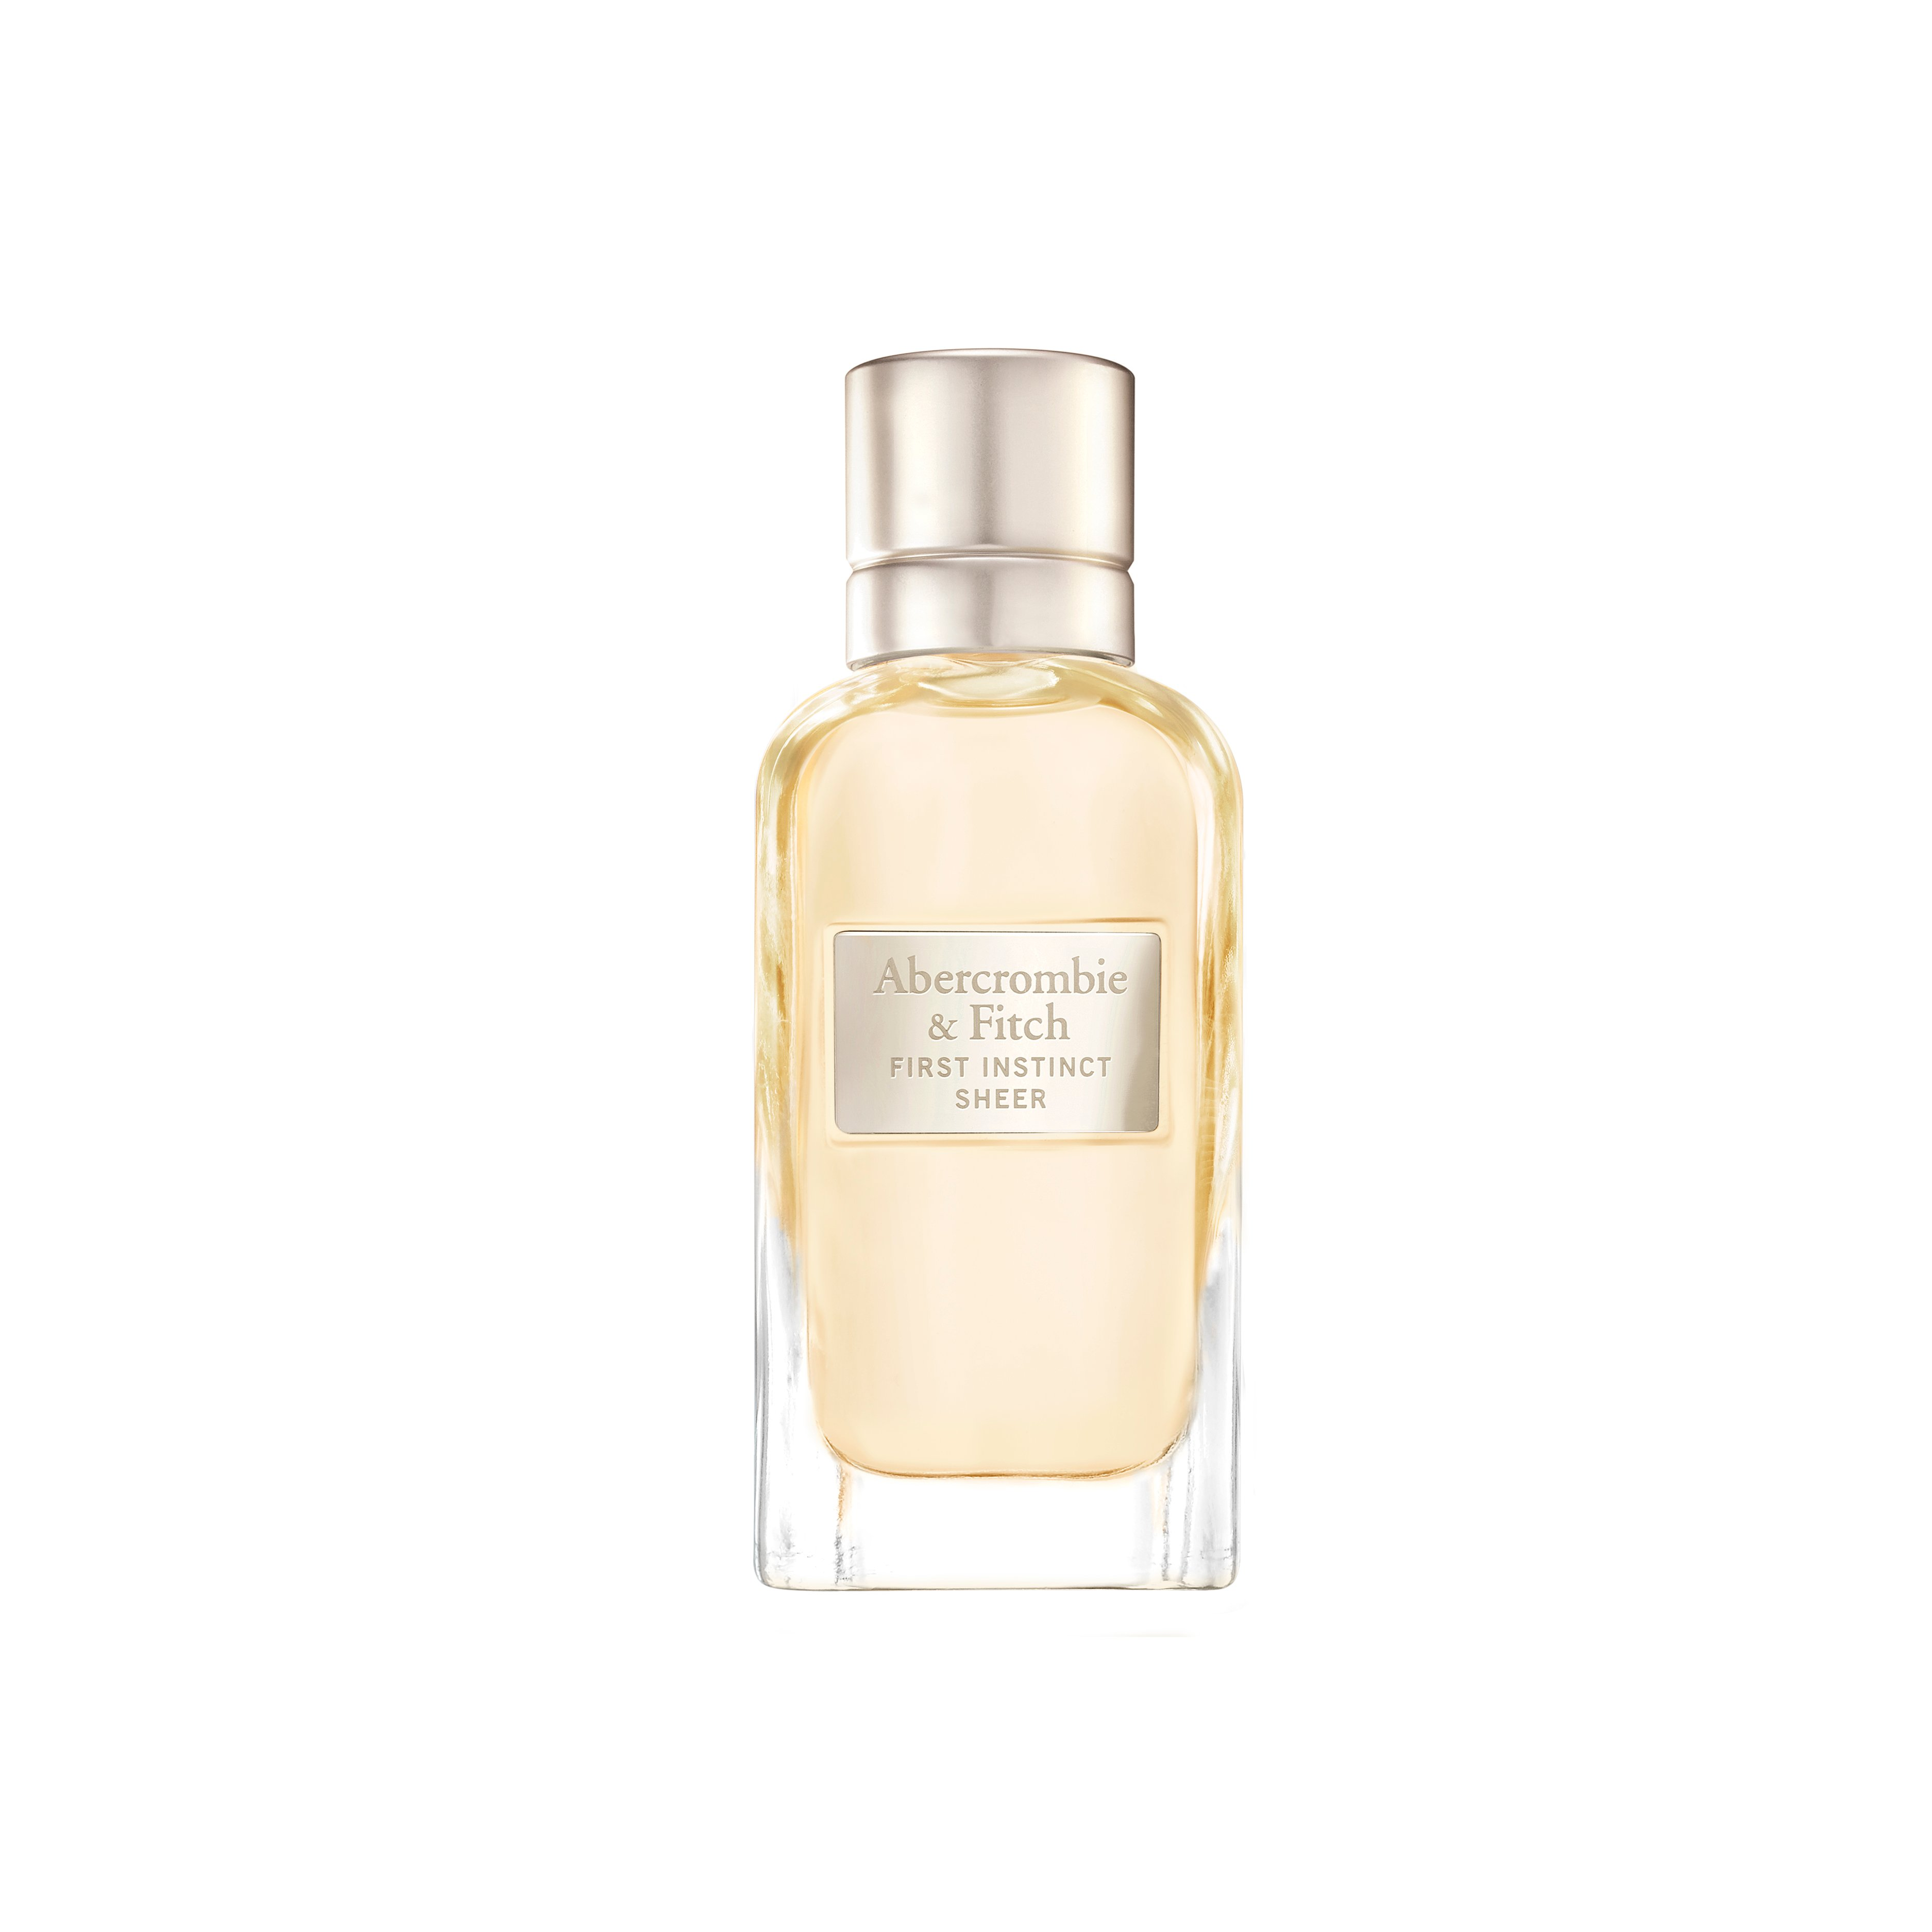 Abercrombie & Fitch - First Instinct Sheer For Her EDP 30 ml